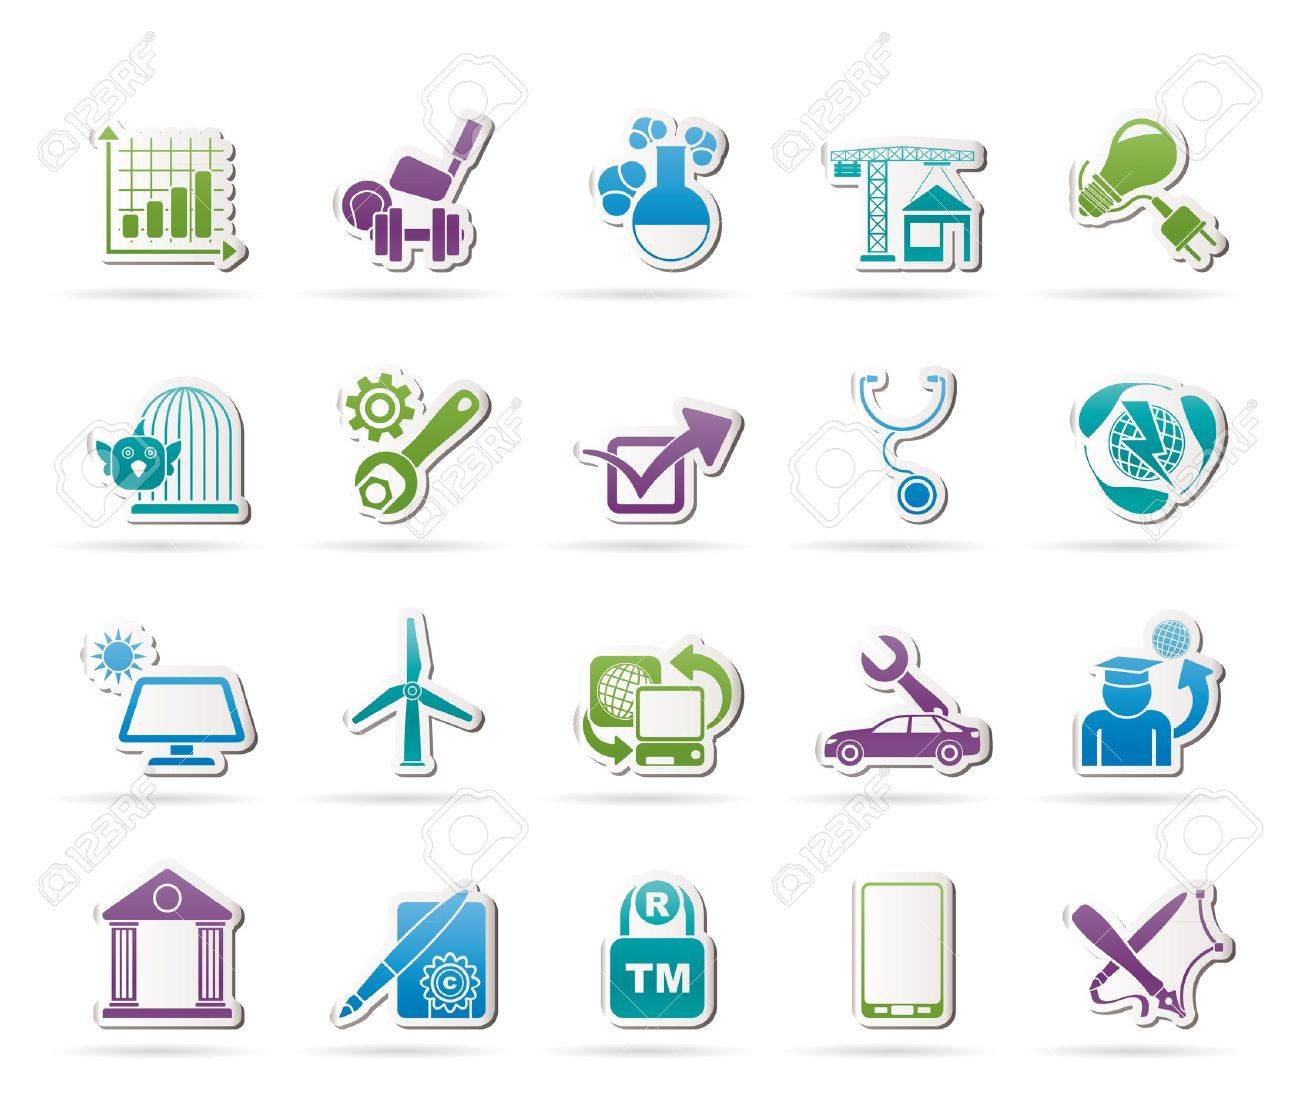 Internet and Website Portal icons - 16100002